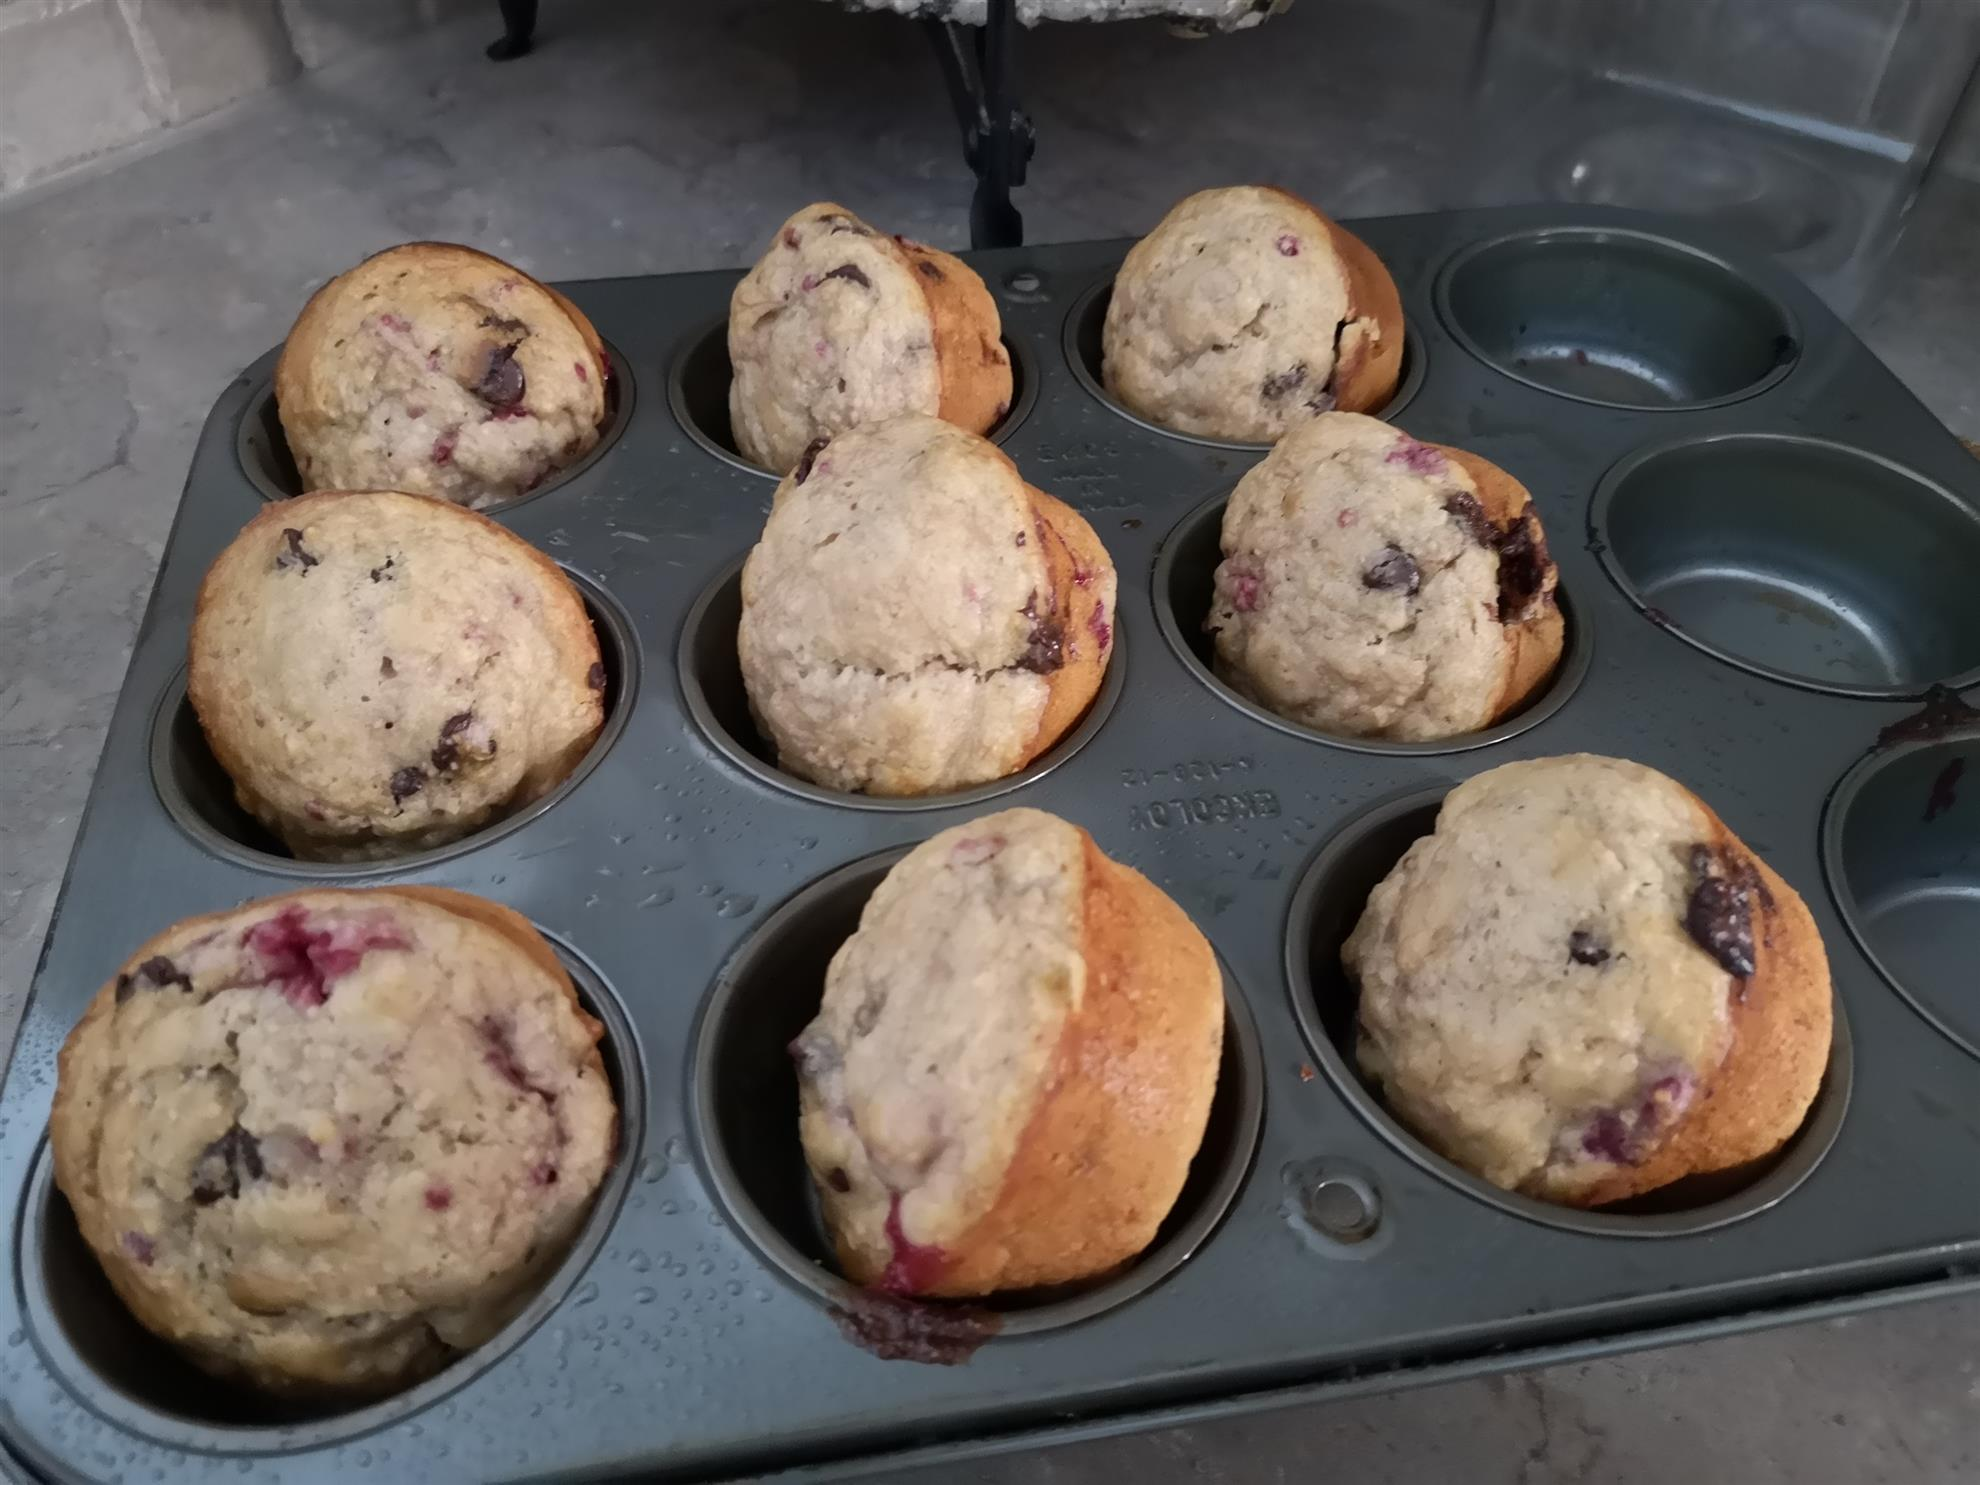 A pan of muffins.